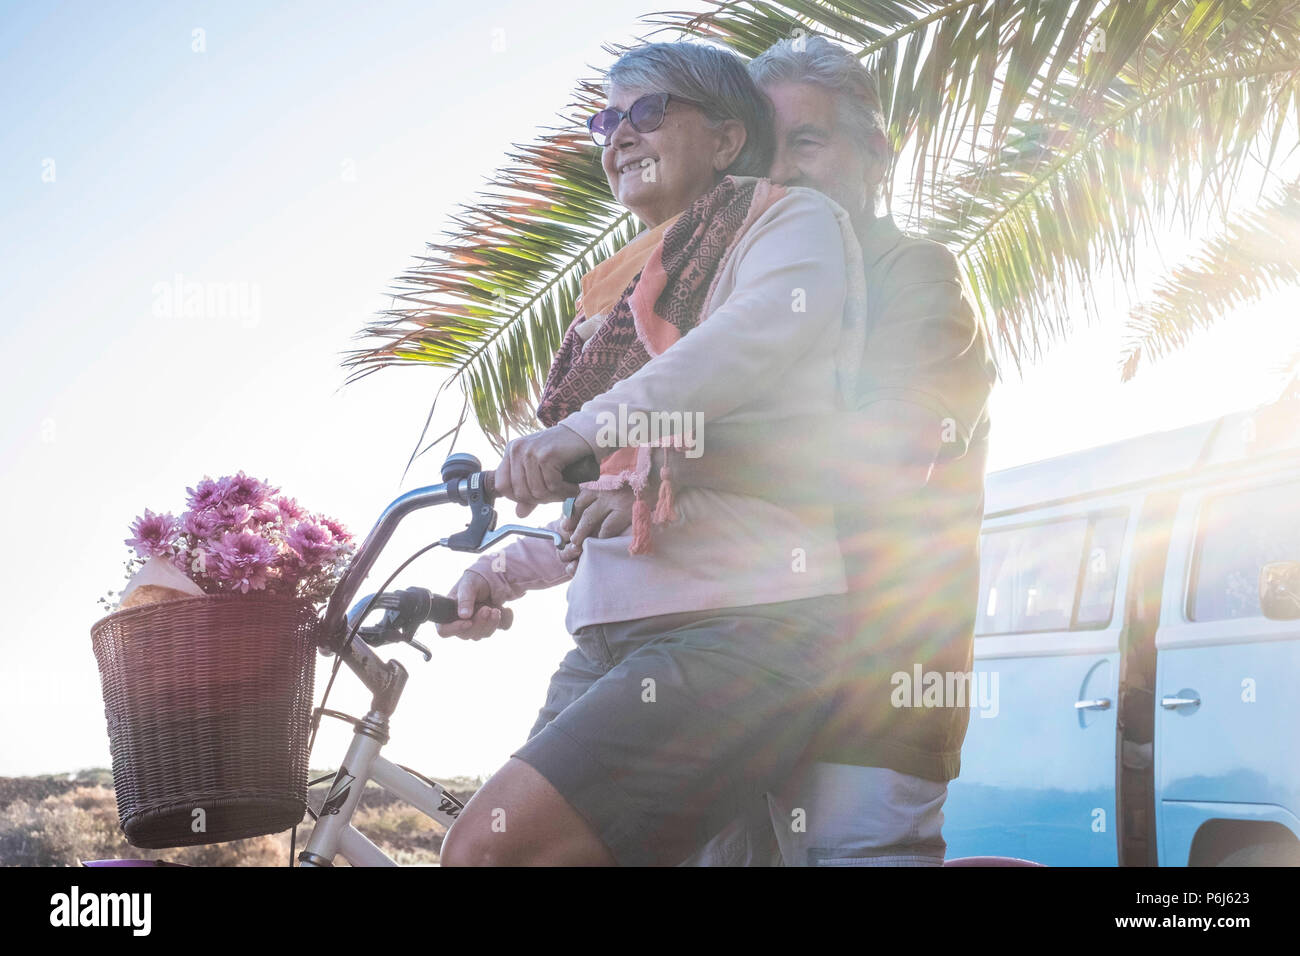 elderly senior caucasian couple play and enjoy leisure activity outdoor in lifestyle vacation. man and woman retired go on a vintage bike like childre - Stock Image